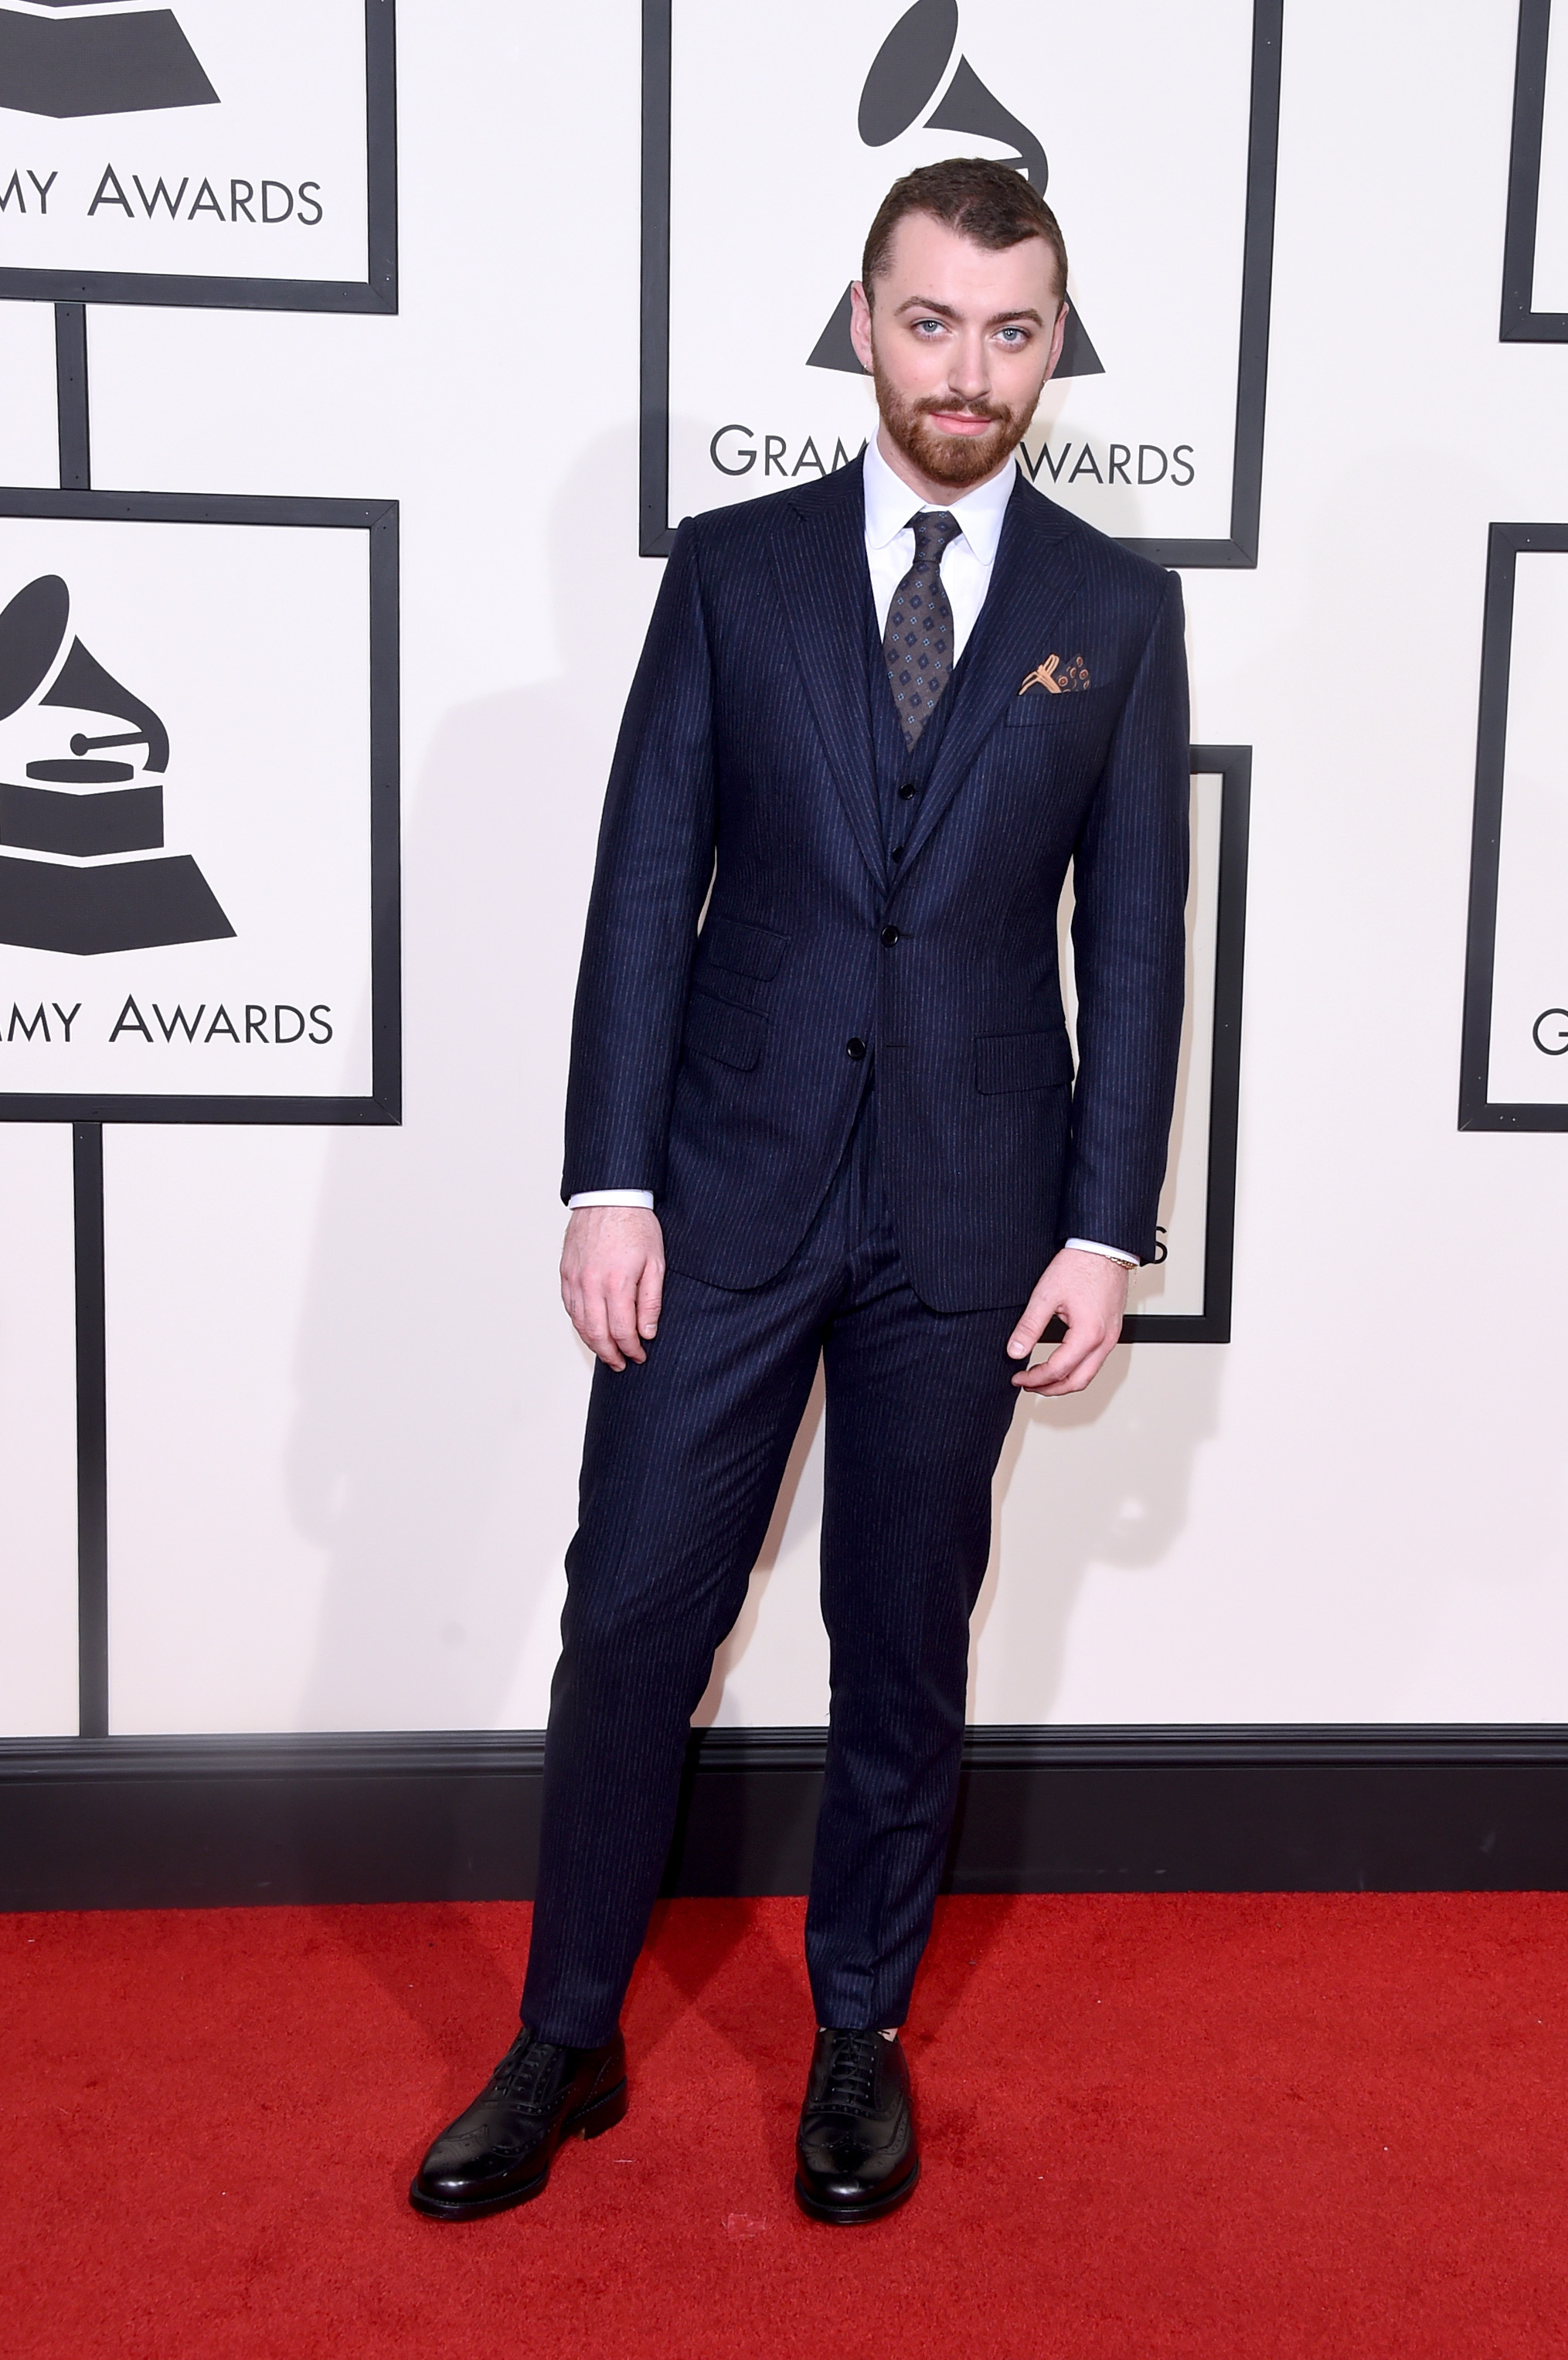 Sam Smith attends the 58th GRAMMY Awards at Staples Center on Feb. 15, 2016 in Los Angeles.